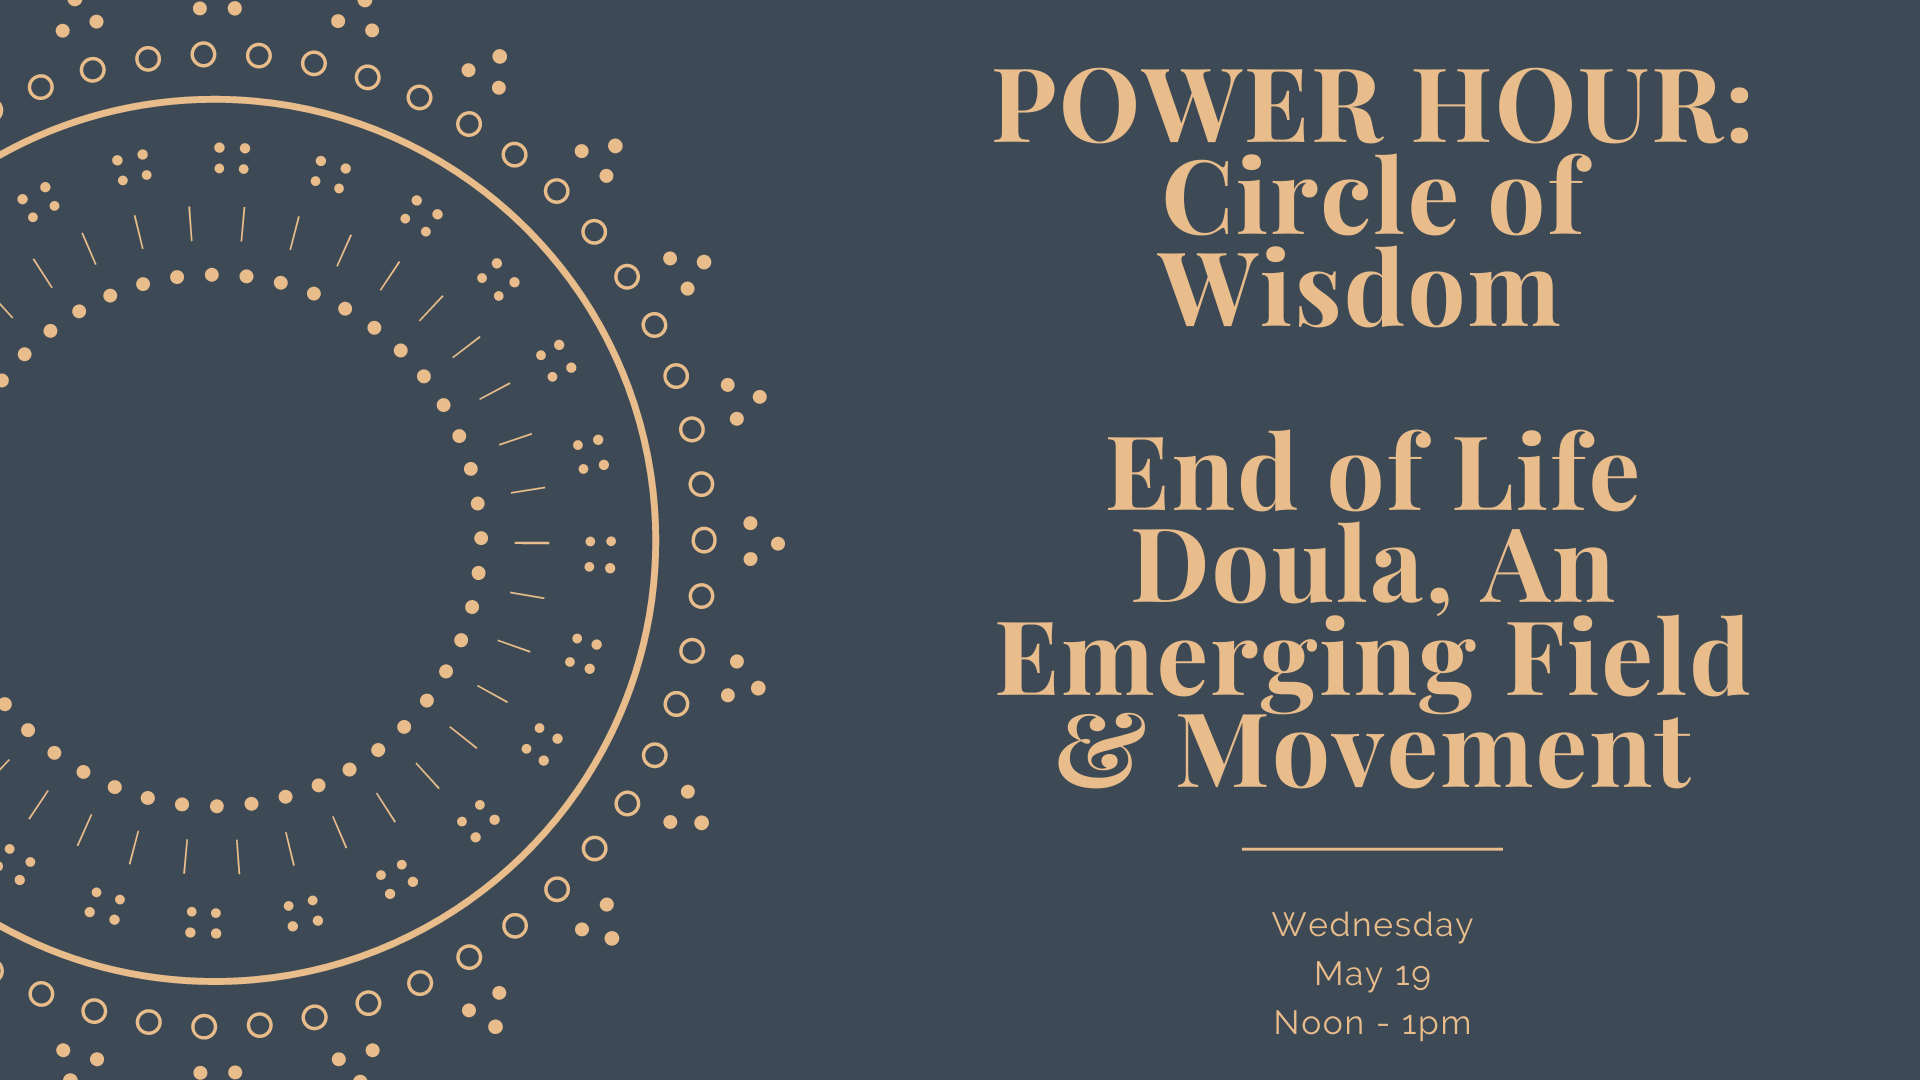 POWER HOUR: Circle of Wisdom - End of Life Doula, An Emerging Field & Movement